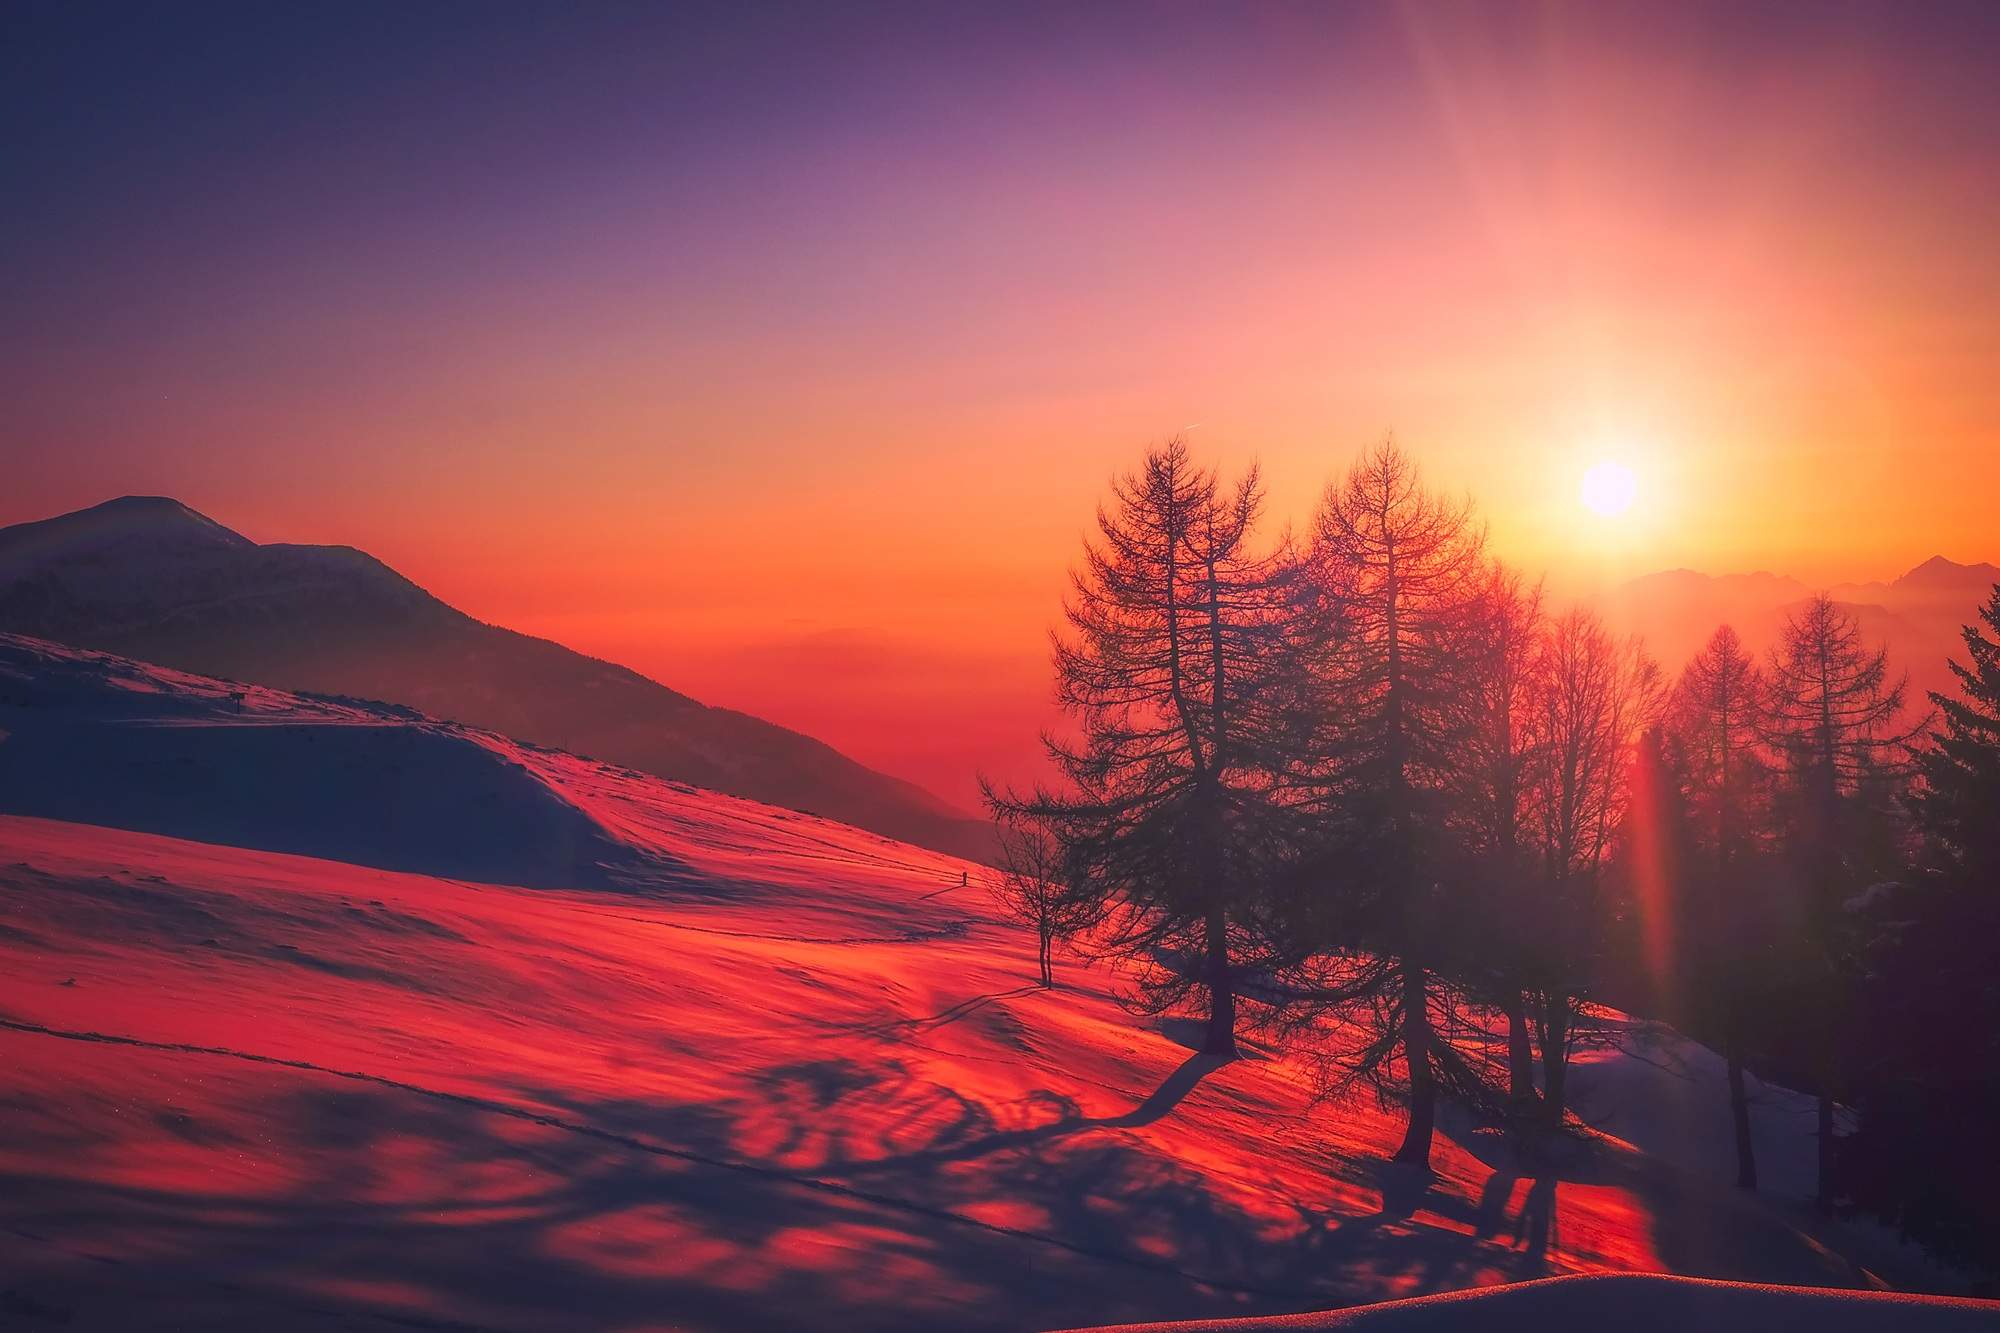 579 Sunrise Hd Wallpapers Background Images Wallpaper Abyss